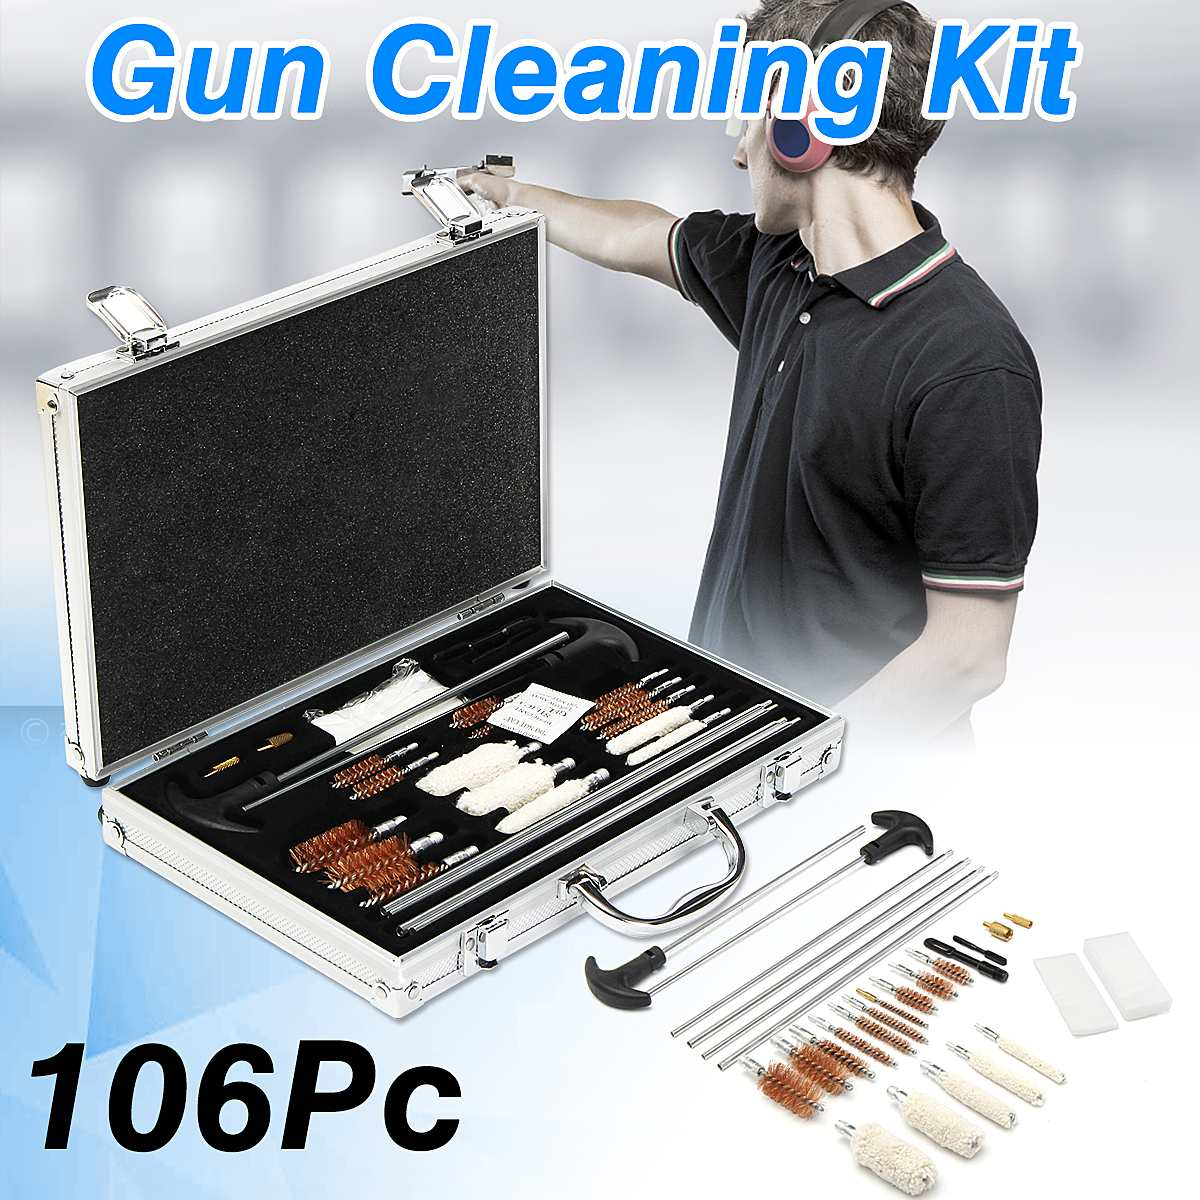 106Pcs Universal G un Cleaning Tool Kit Rifle Handgun Shotgun F irearm Cleaner Pistol Pipe Mop Brush Accessory with Carry Case gigabyte ga h110m ds2 ddr3